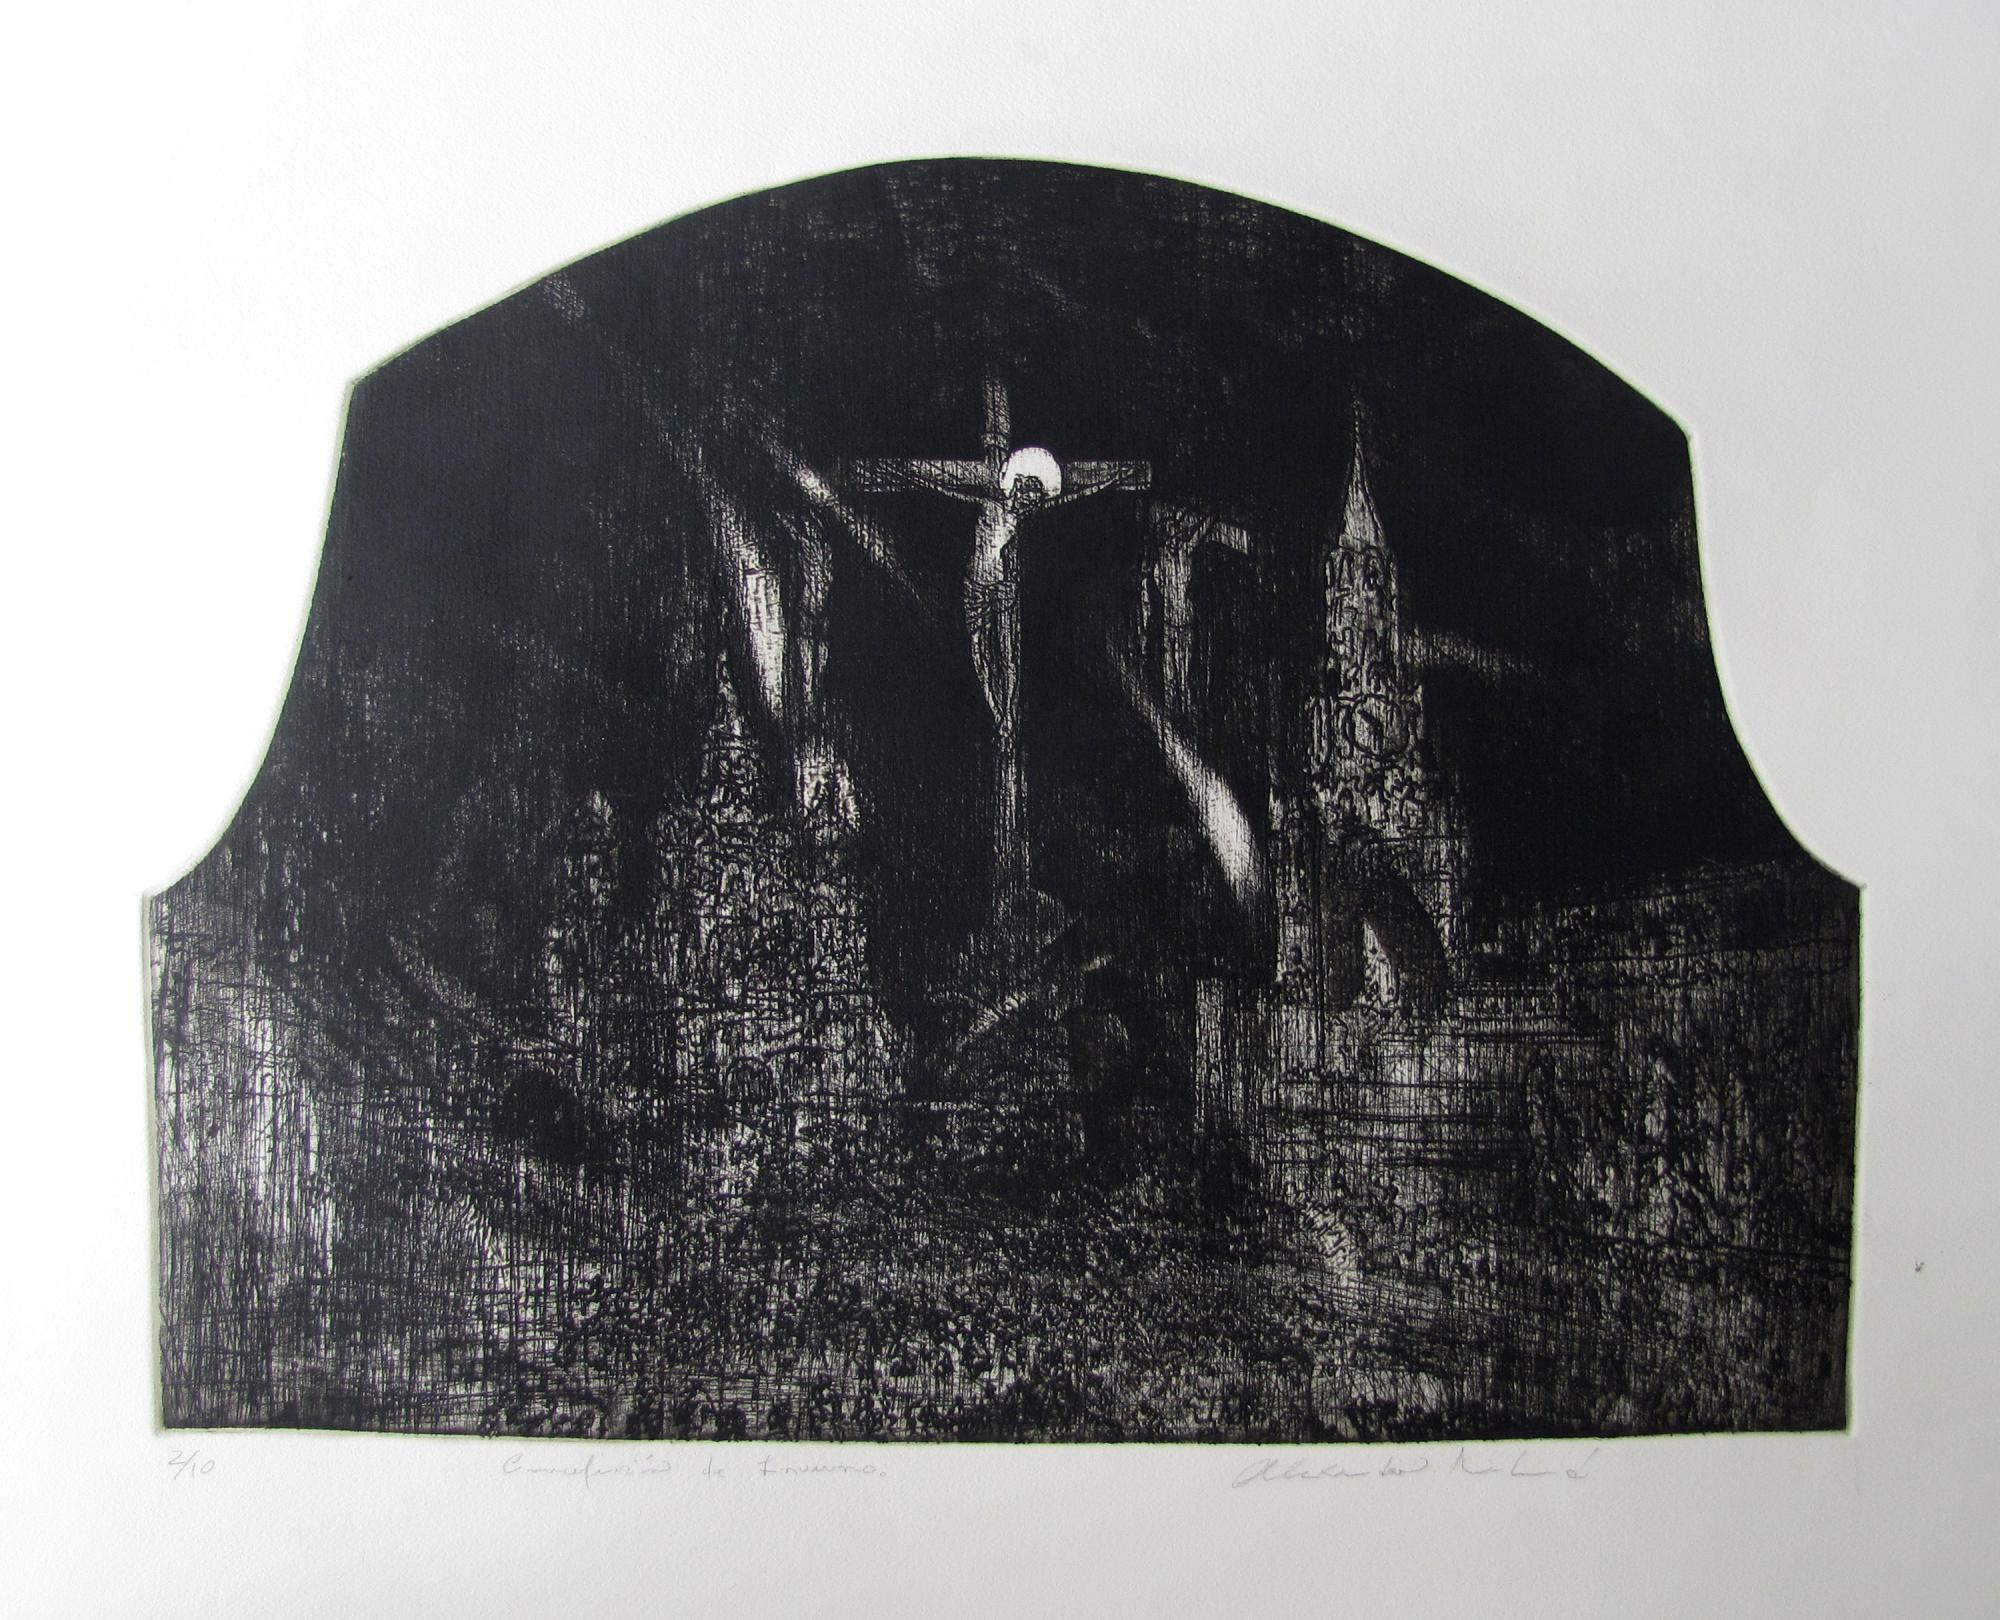 Crucifixion de invierno Etching .1995. 24 x 19 inches